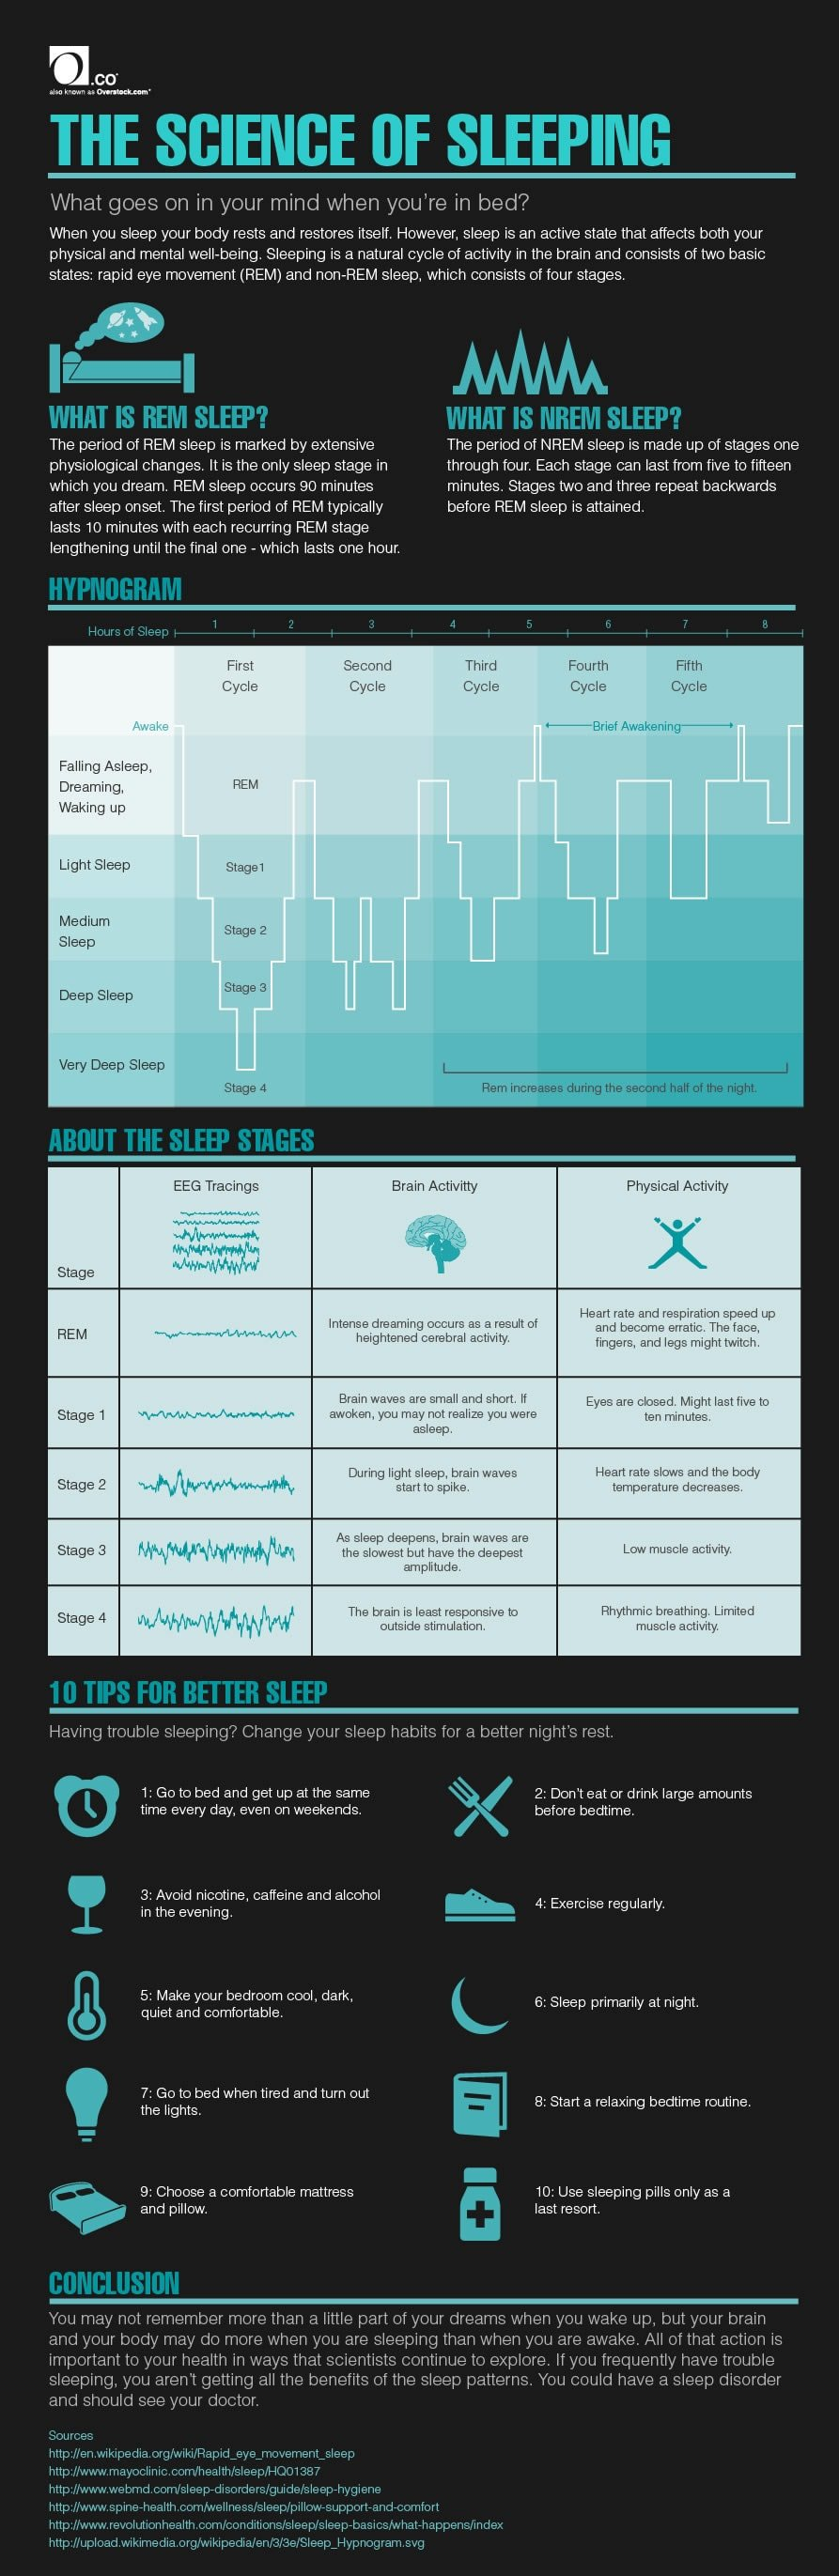 The Science of Sleeping